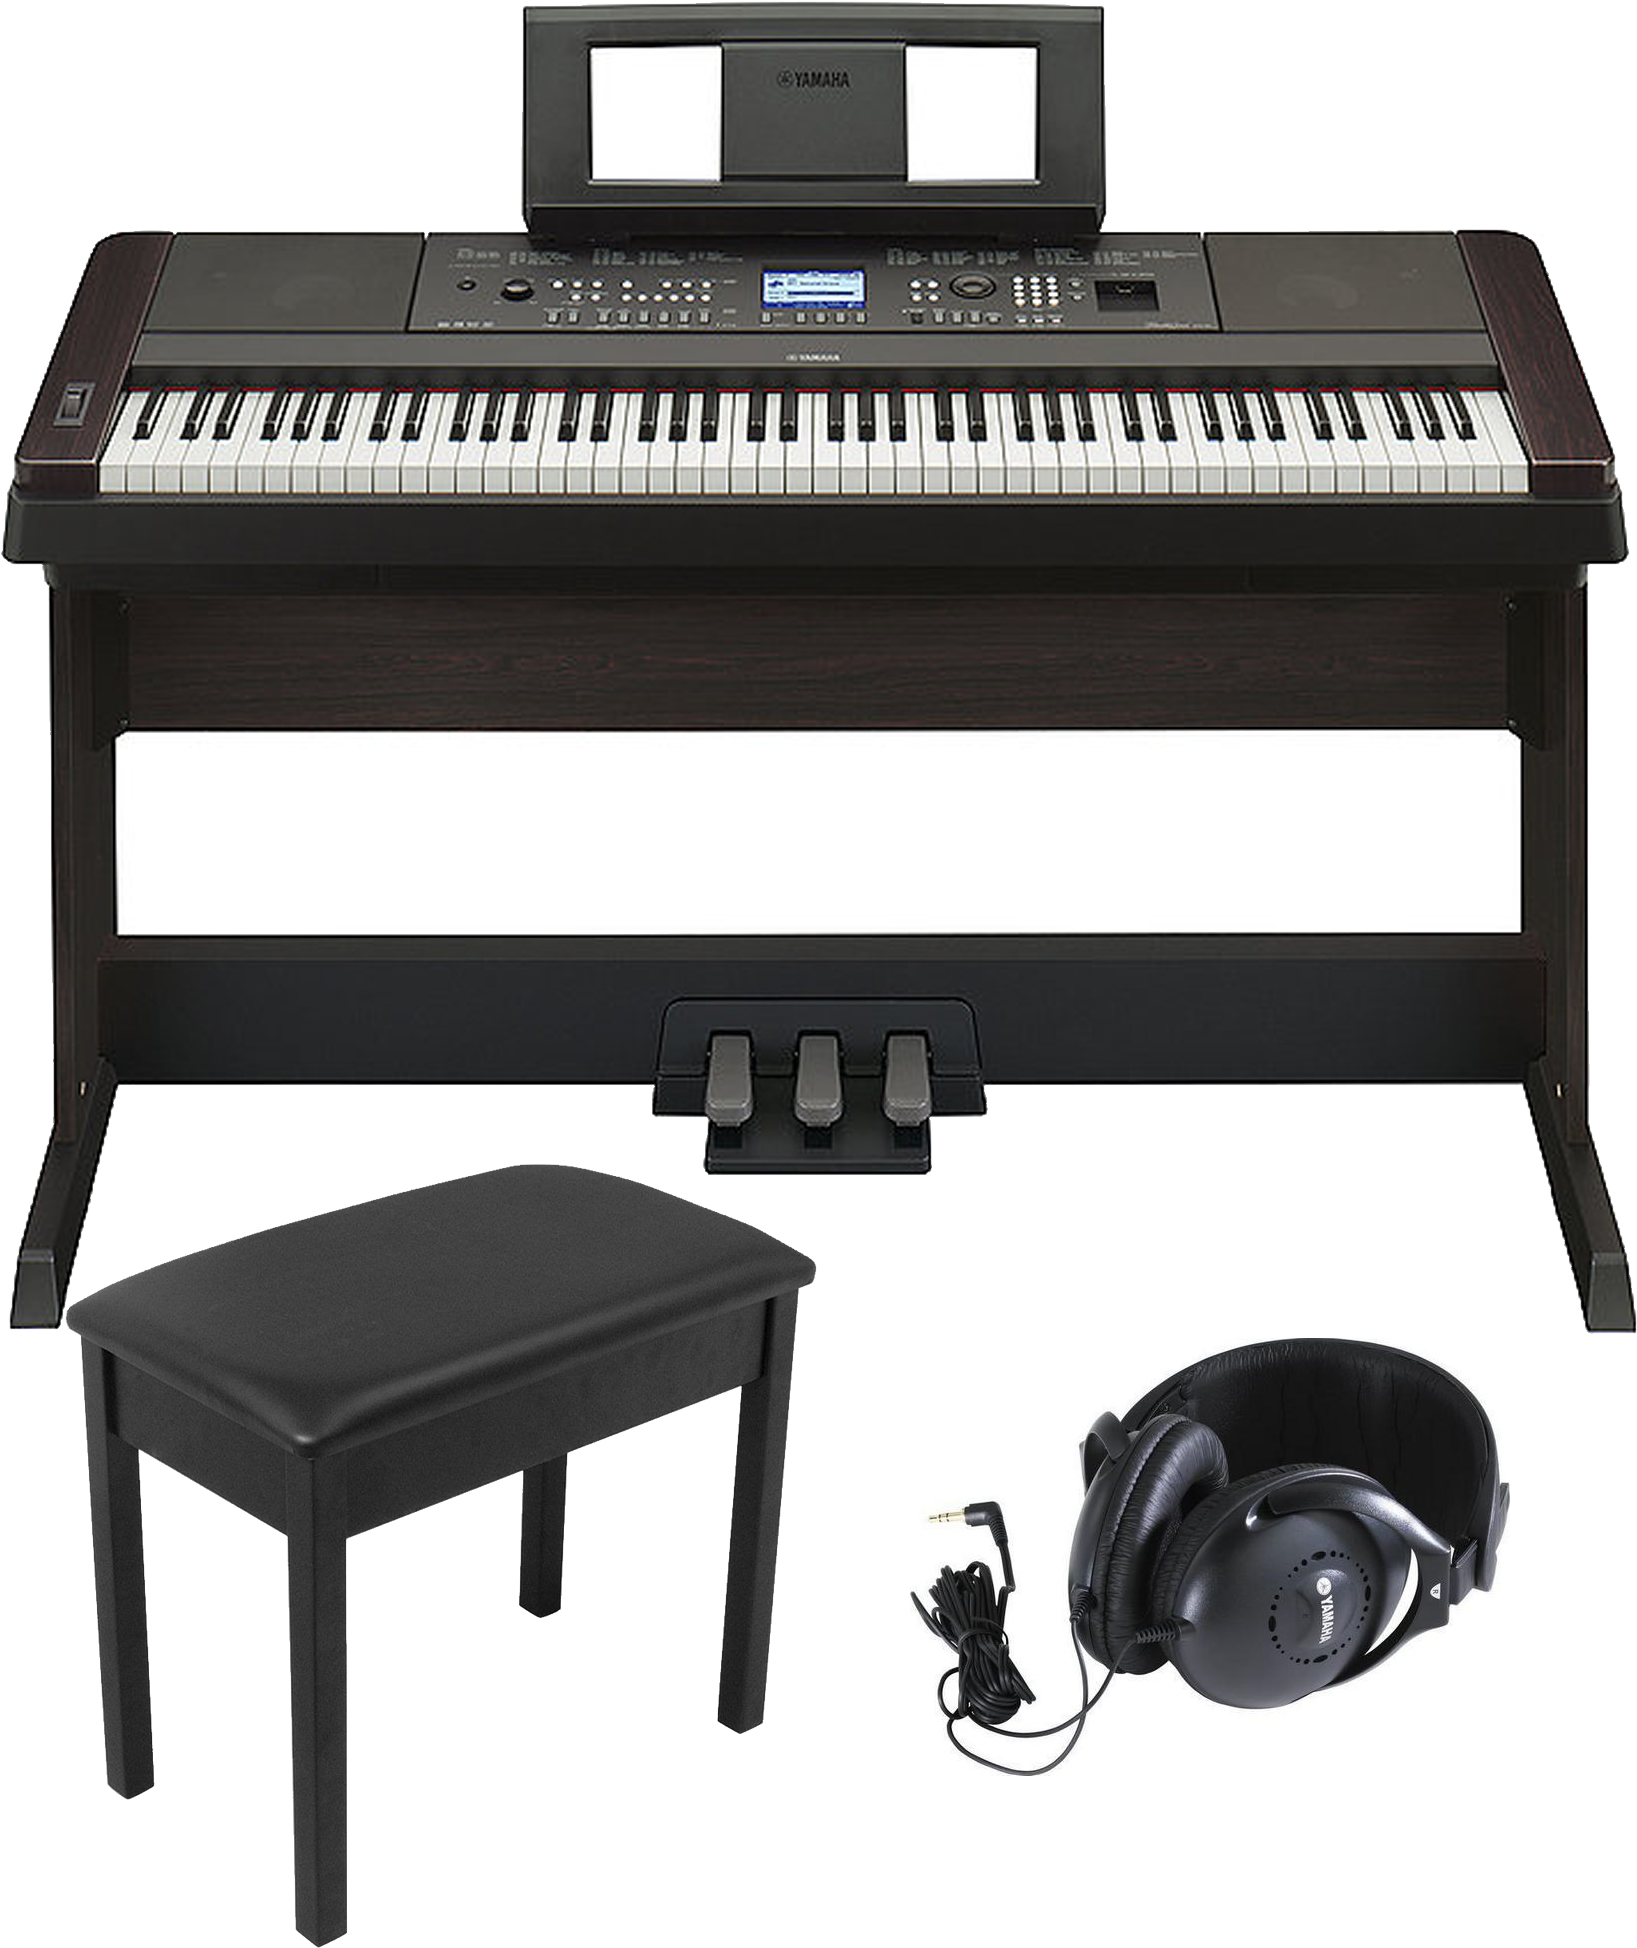 yamaha dgx650b portable grand piano bundle. Black Bedroom Furniture Sets. Home Design Ideas